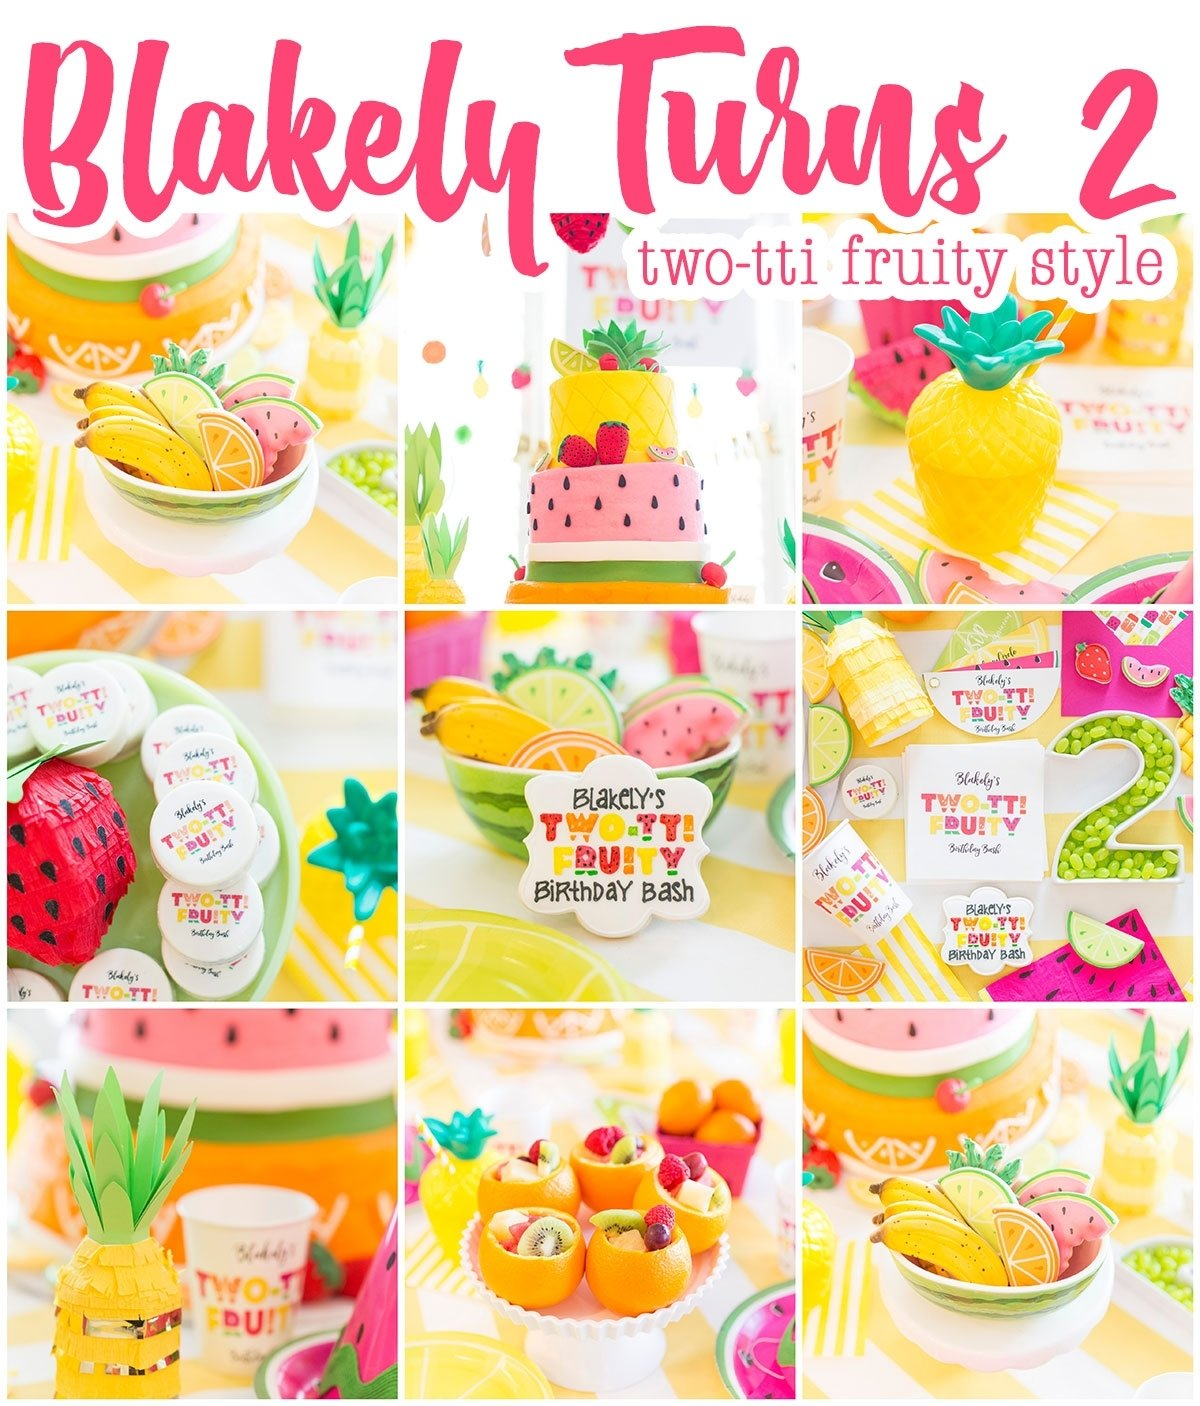 10 Great 2 Yr Old Birthday Party Ideas two tti fruity birthday party blakely turns 2 pizzazzerie 7 2020